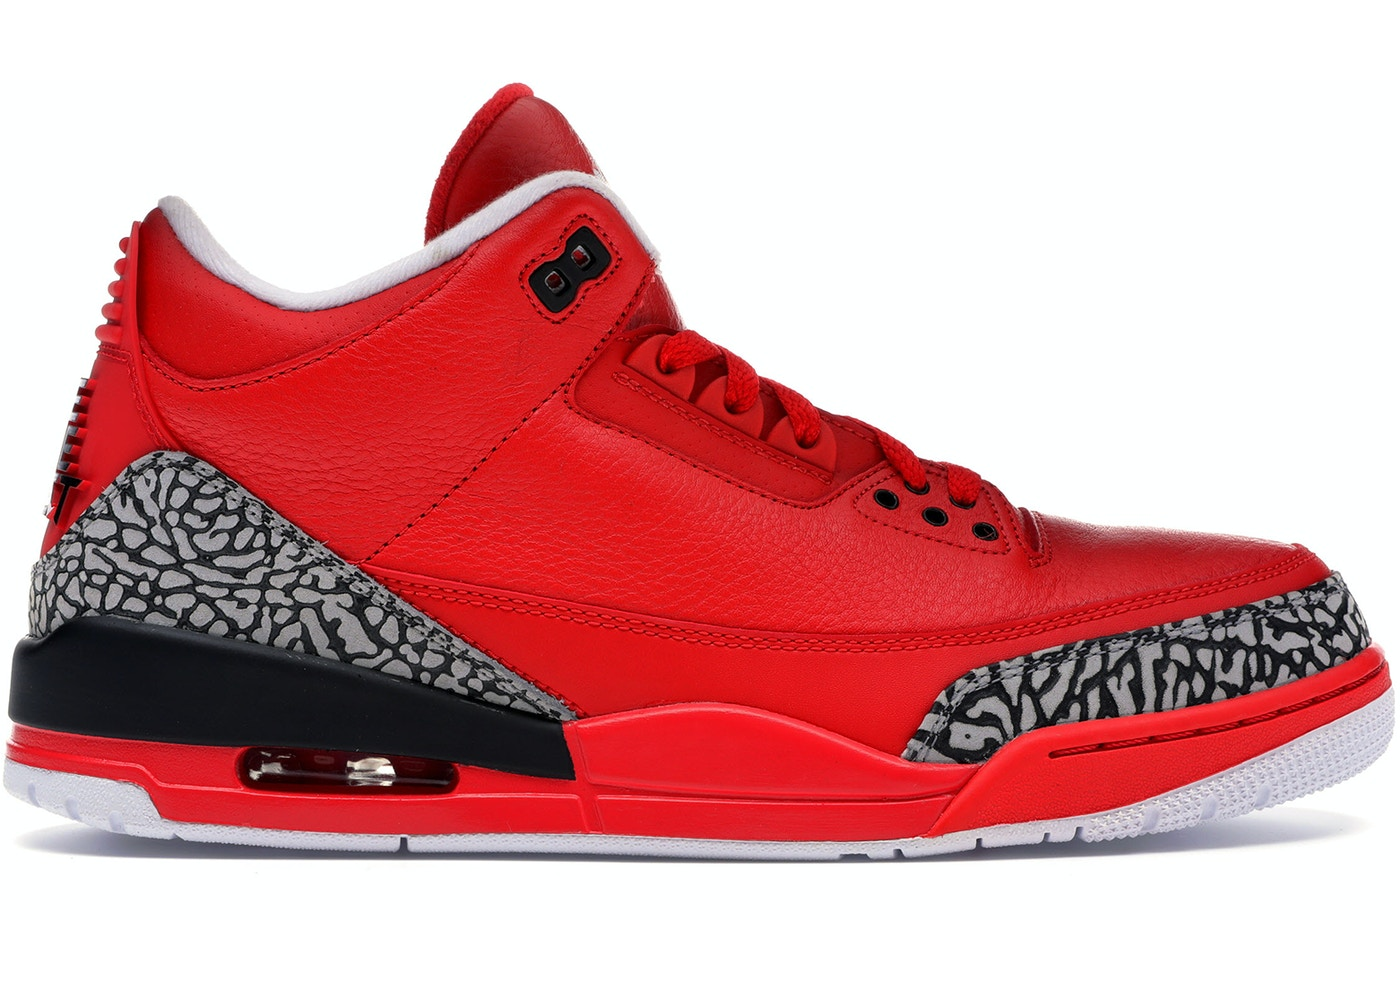 4ca91d7d1be Jordan 3 Retro DJ Khaled Grateful - AJ3-770438